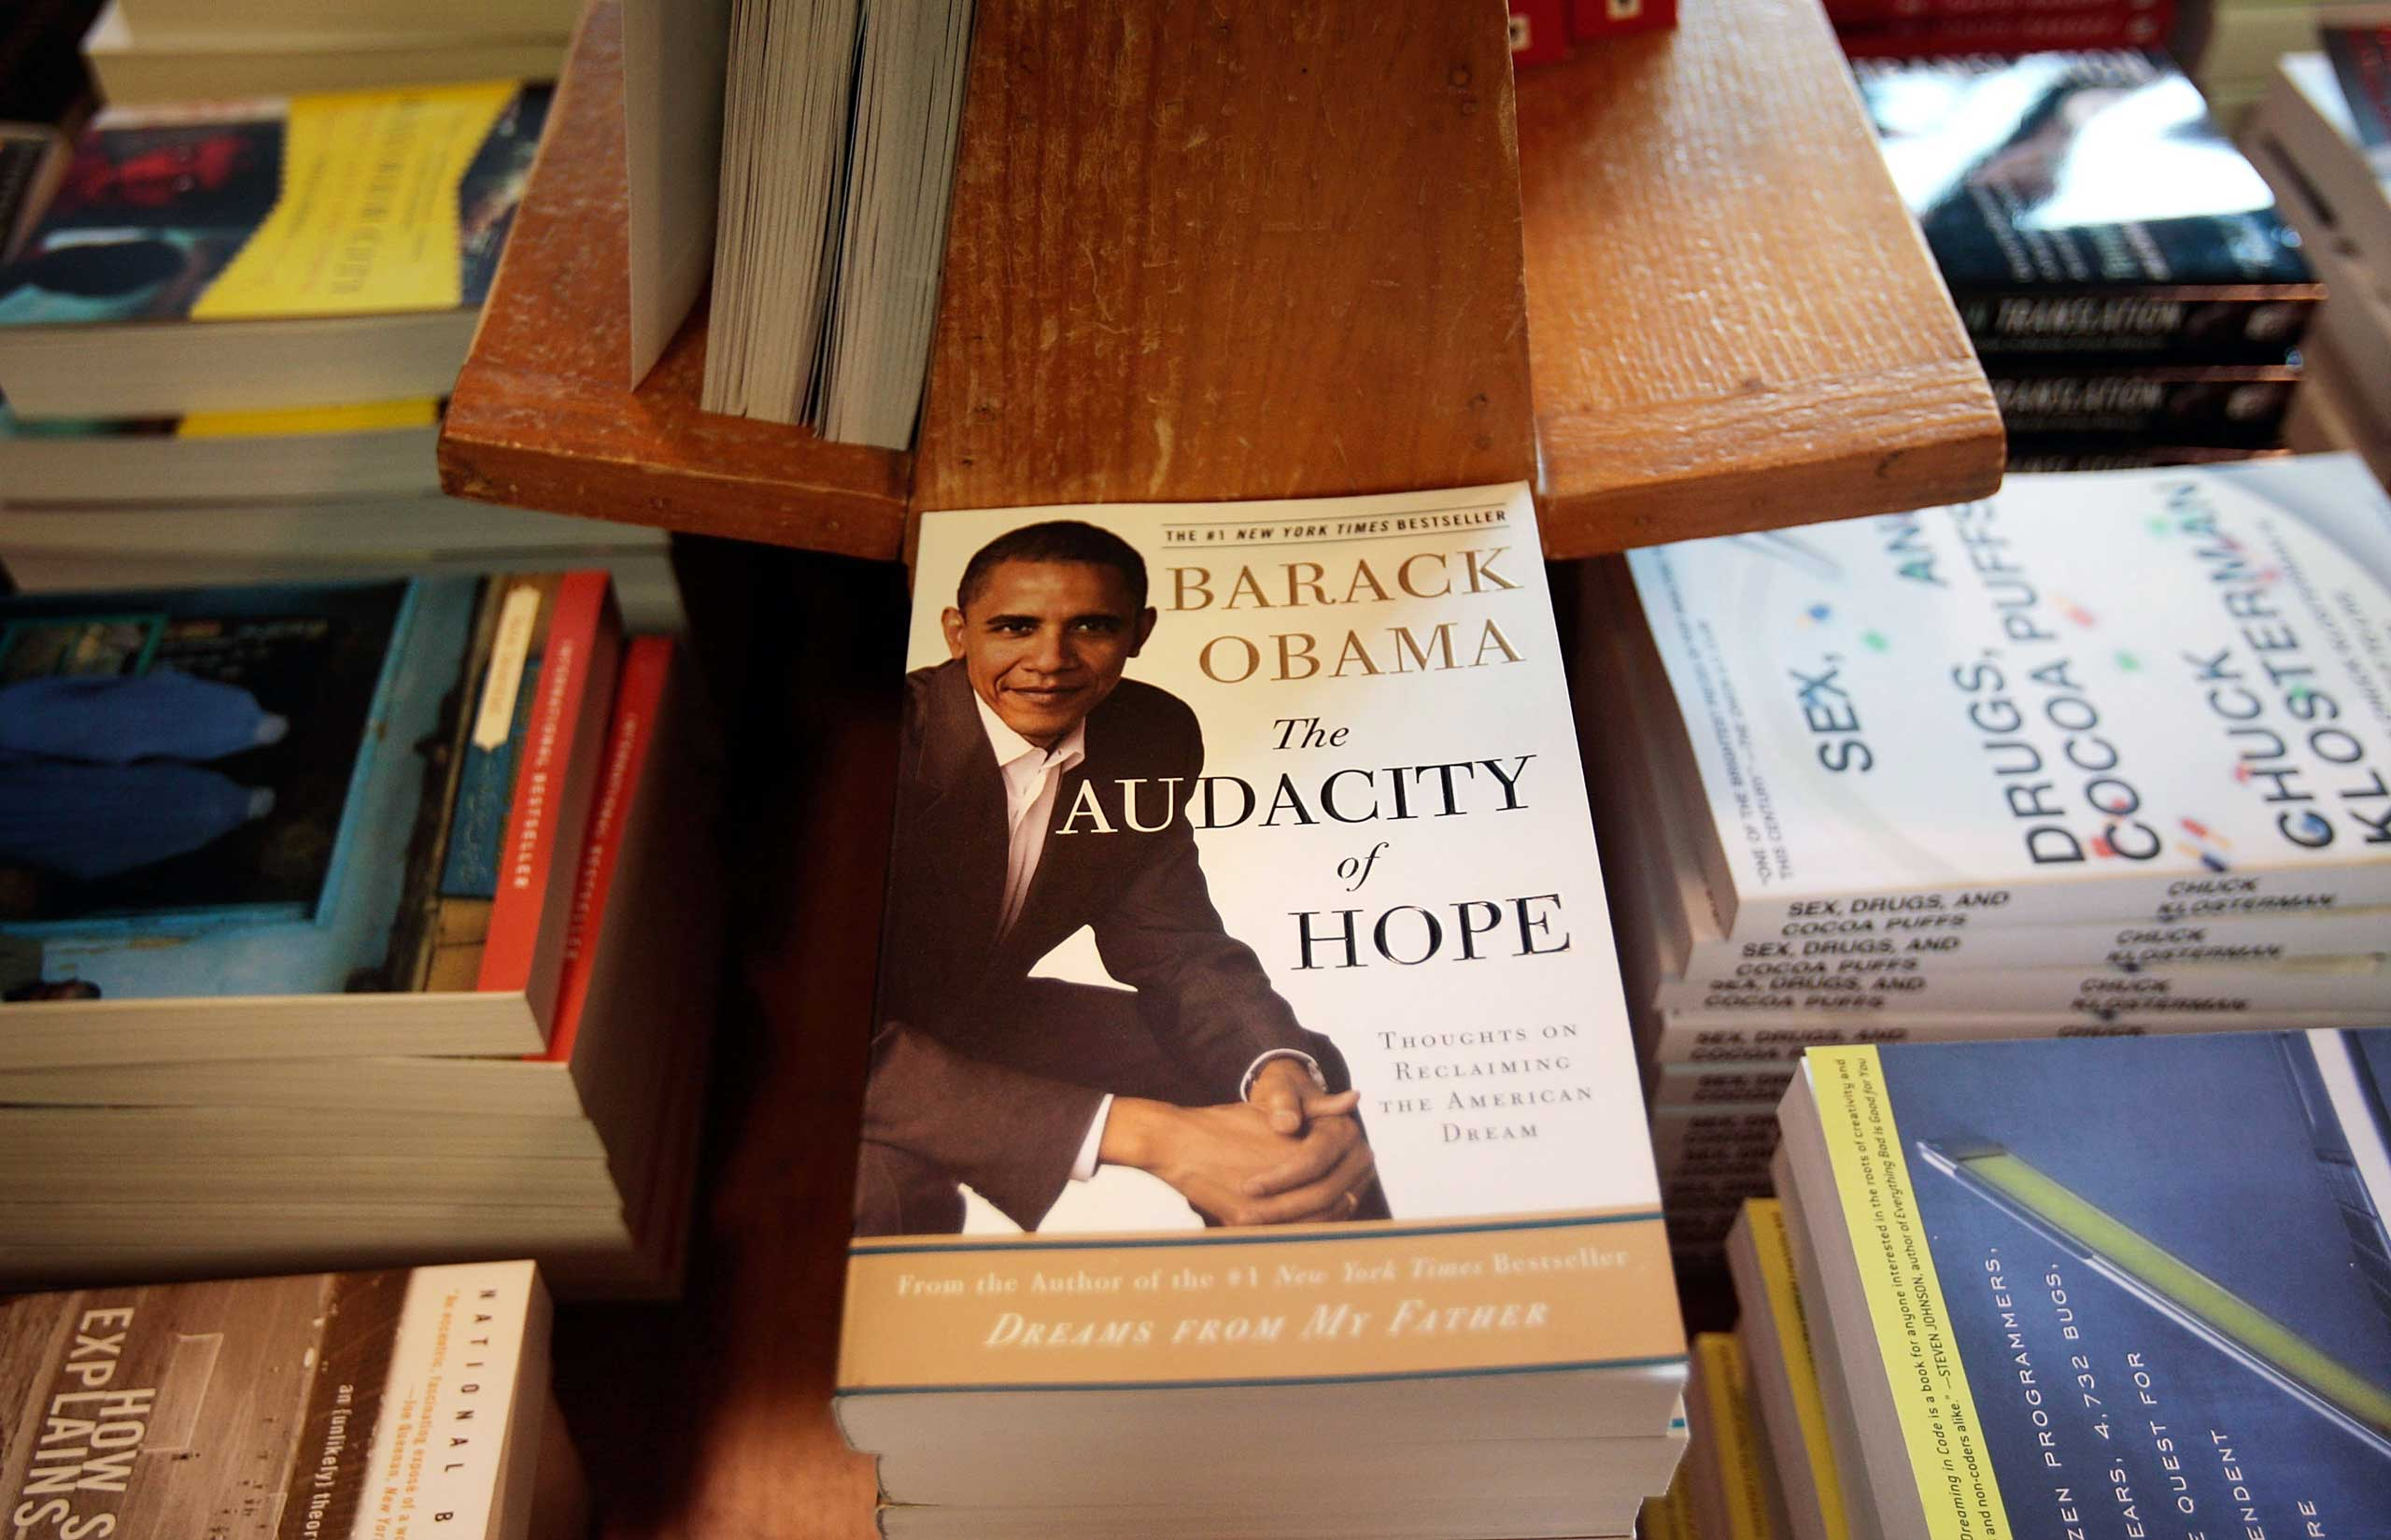 Democratic presidential candidate Sen. Barack Obama's book  The Audacity of Hope  is displayed at a bookstore in New York City on July 14, 2008.